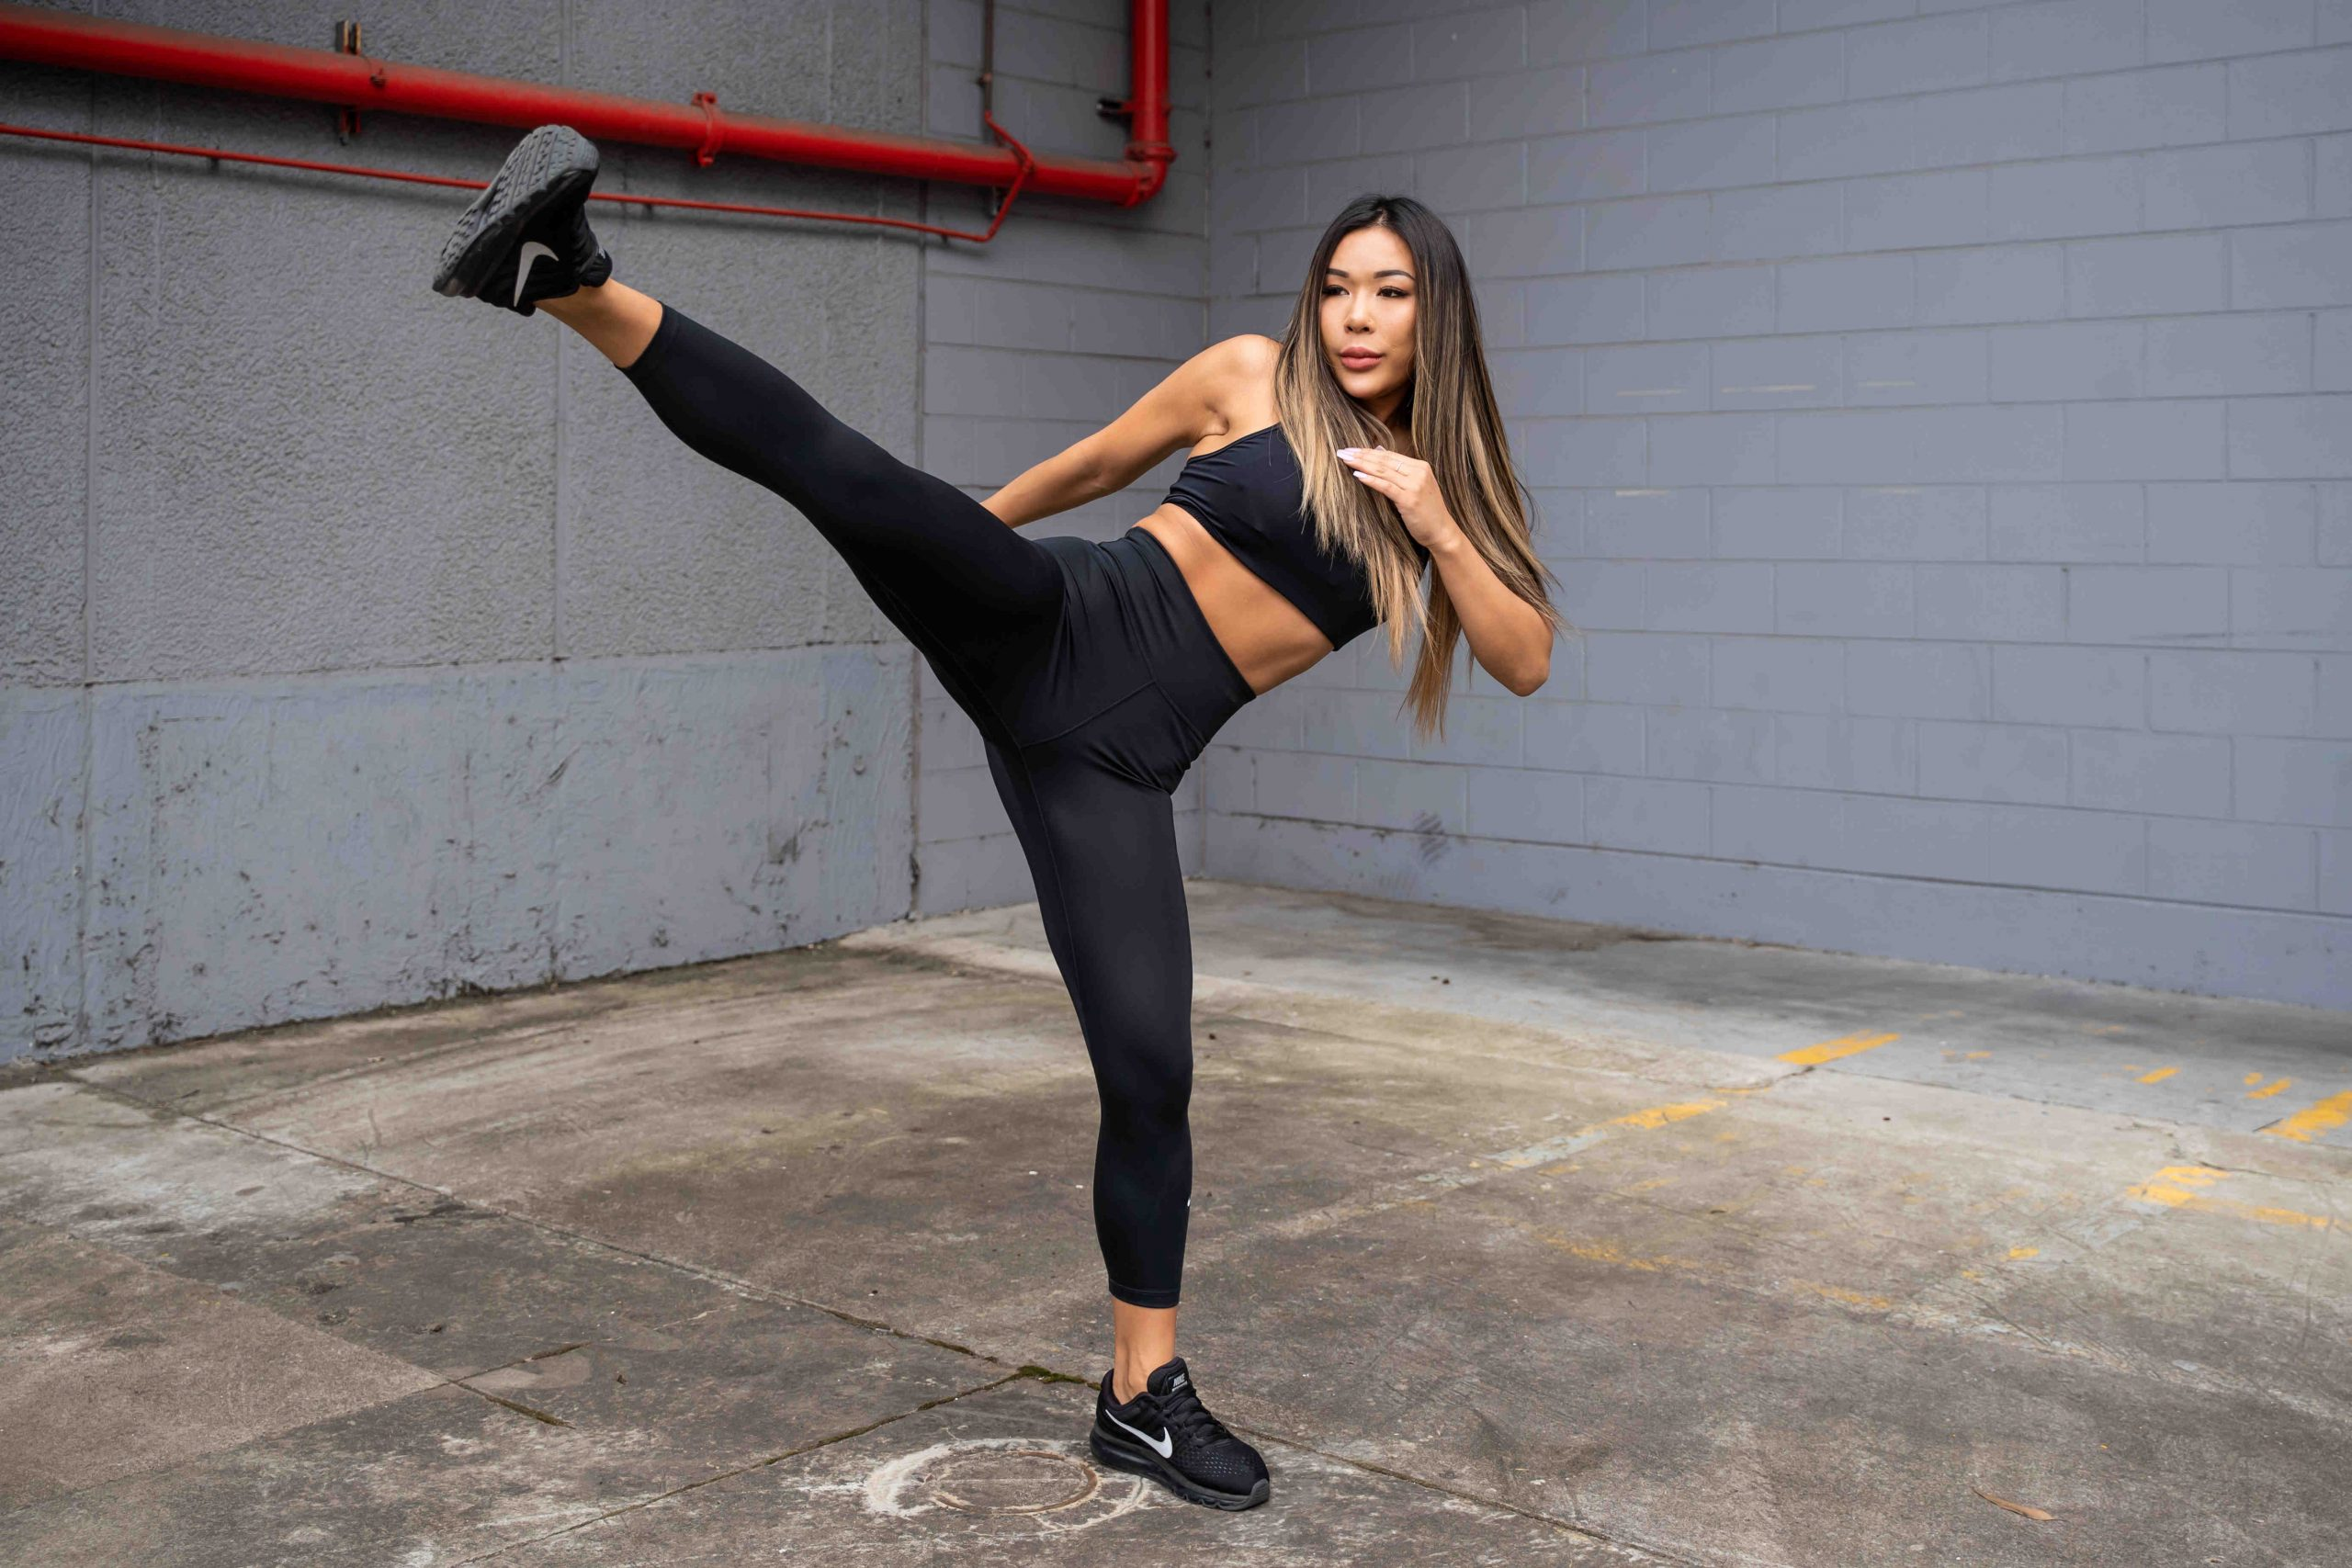 Zora Sydneys chinese fitness model doing a high kick scaled